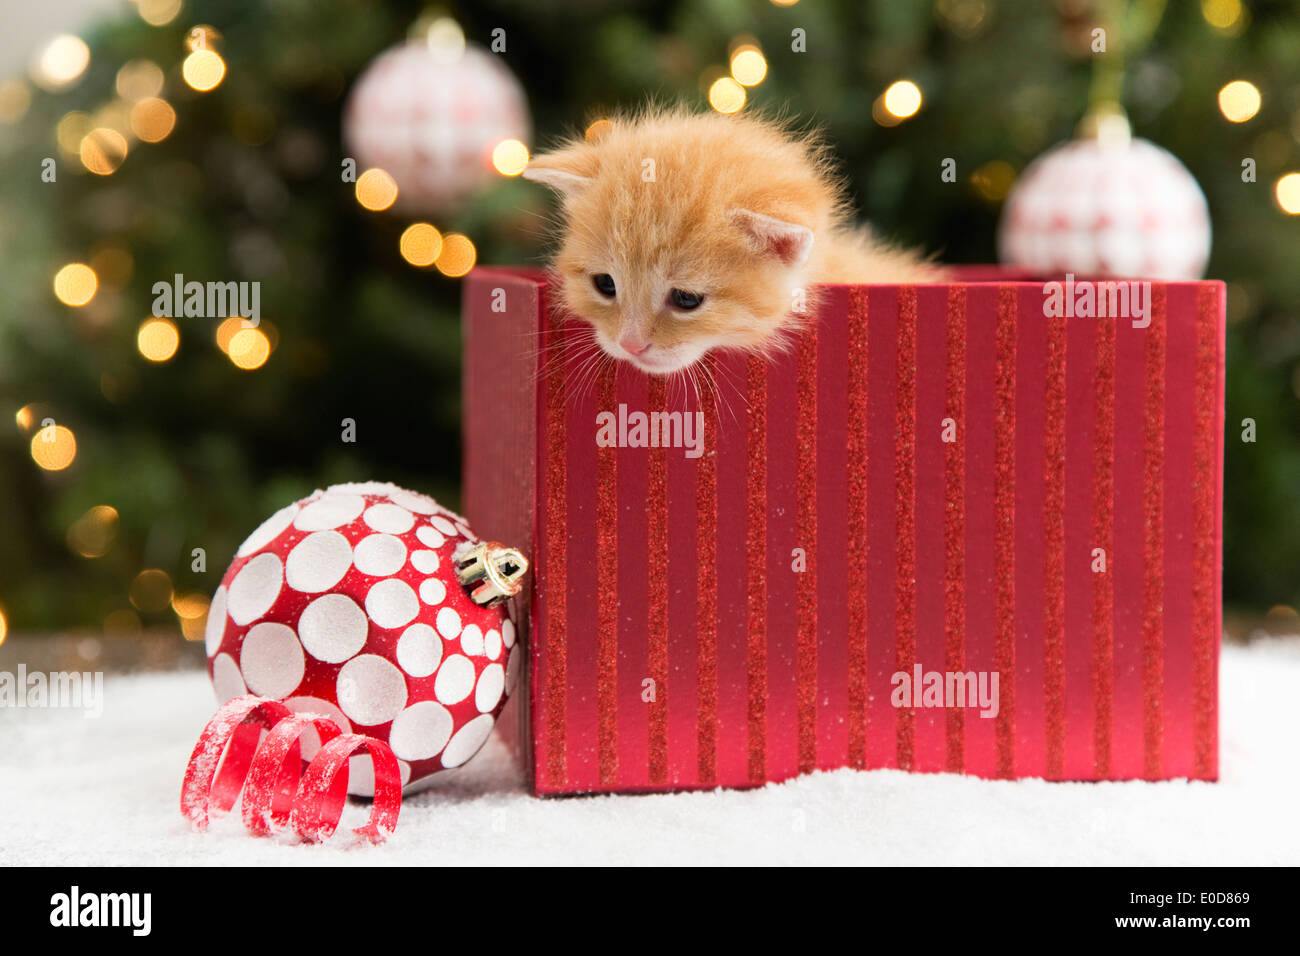 Kitten in red box at Christmas Stock Photo: 69133297 - Alamy